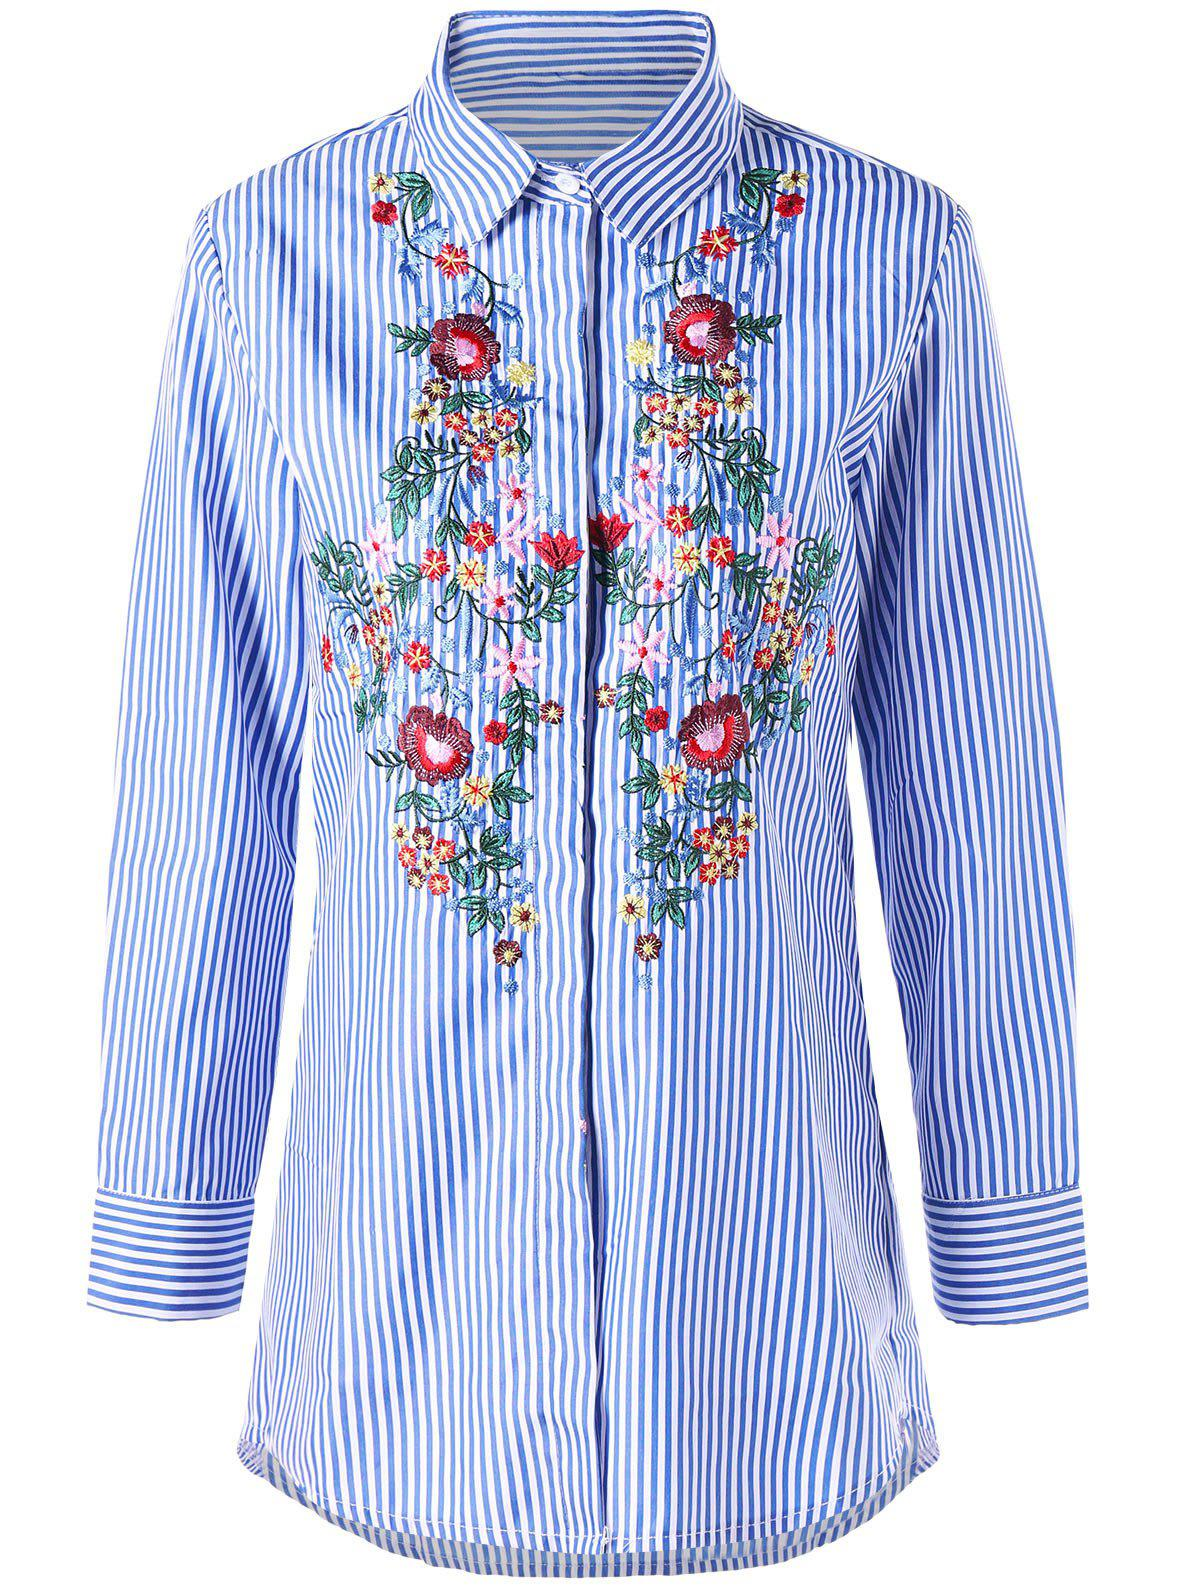 Striped Tunic Floral Embroidered Shirt striped tunic floral embroidered shirt